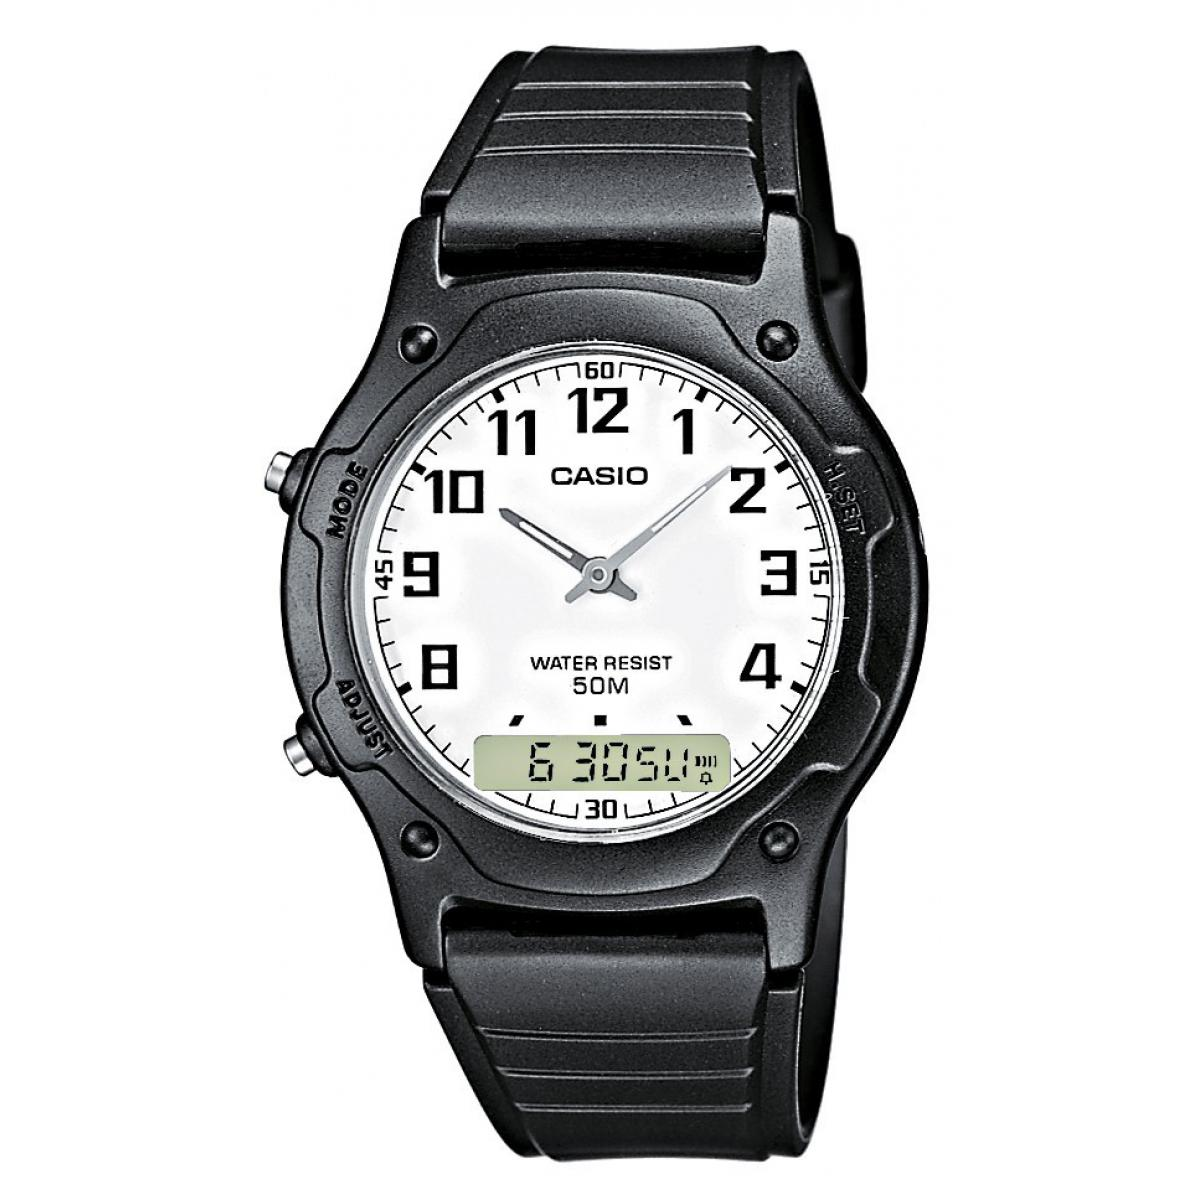 Montre Homme Casio Résine Casio Collection AW-49H-7BVEF